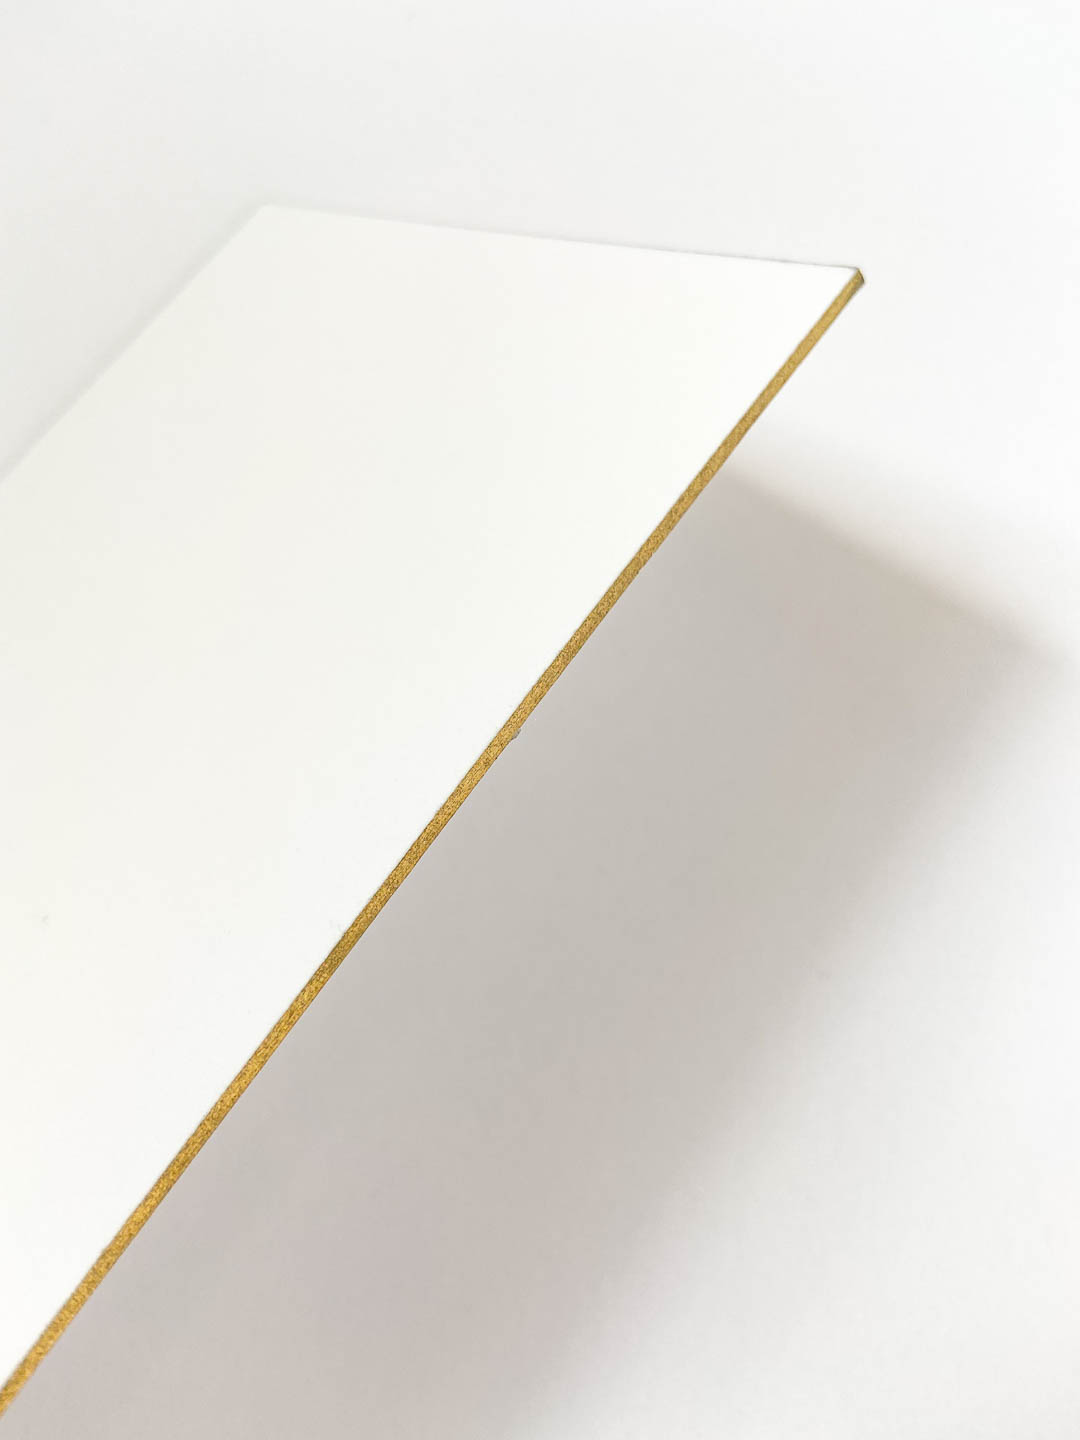 Double thick paper with gold edge painting.